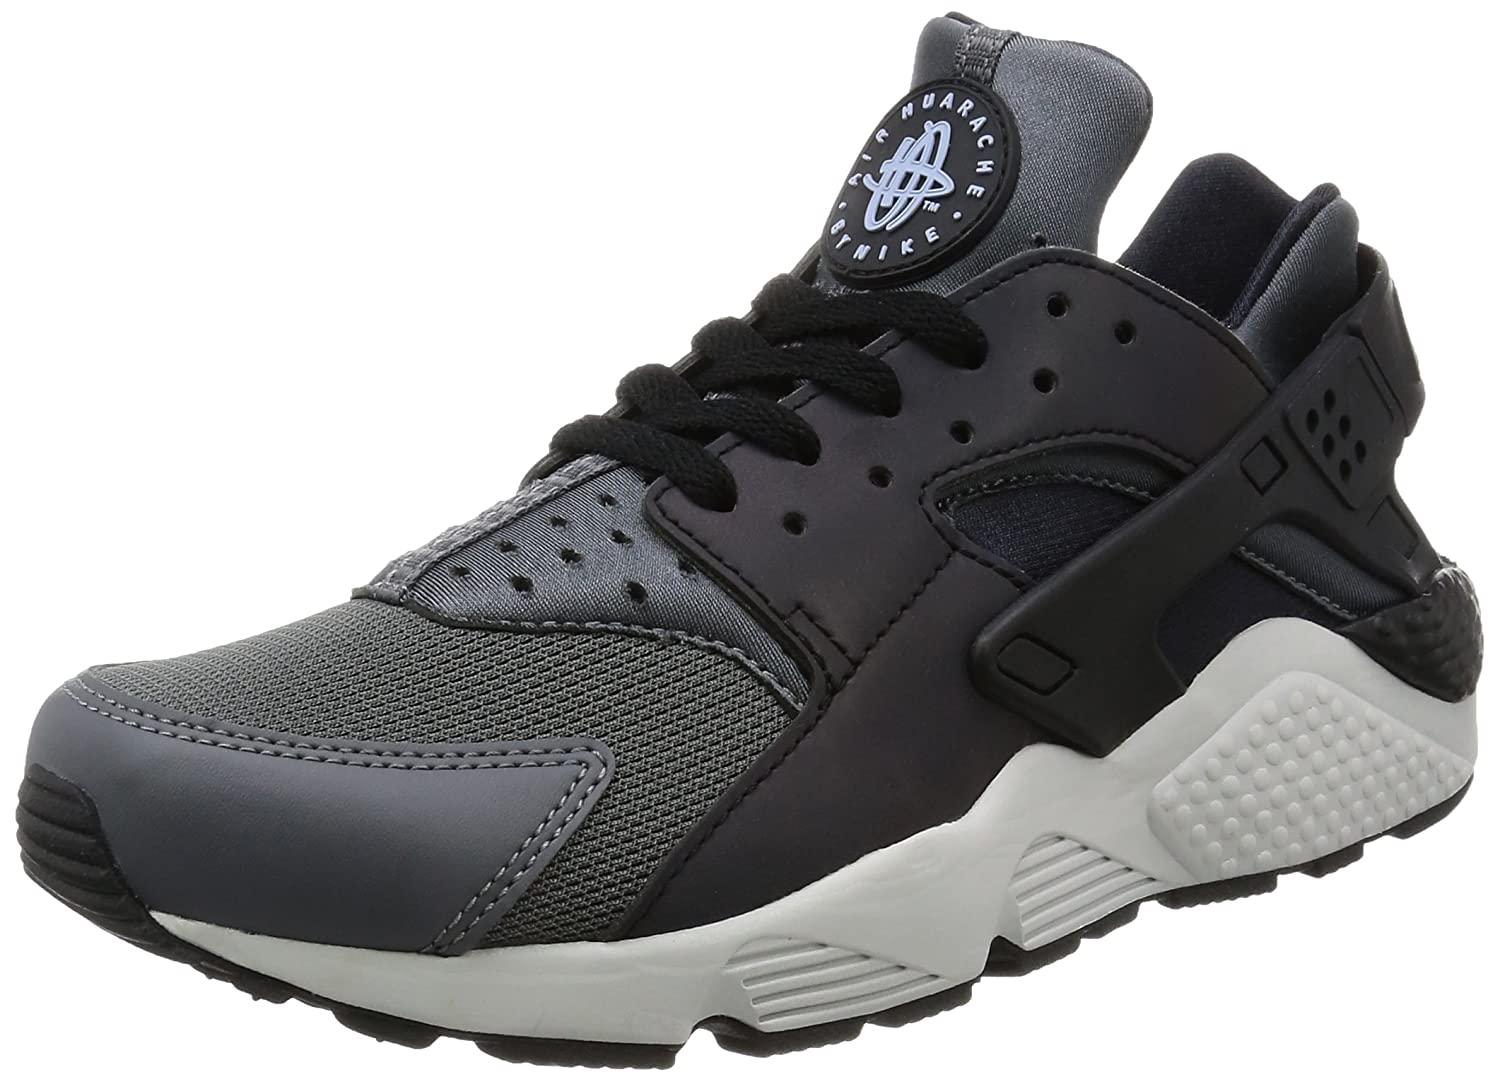 new styles 0bfda 2f565 Nike Men's Air Huarache Run PRM Dark Grey/Black/Black Running Shoe